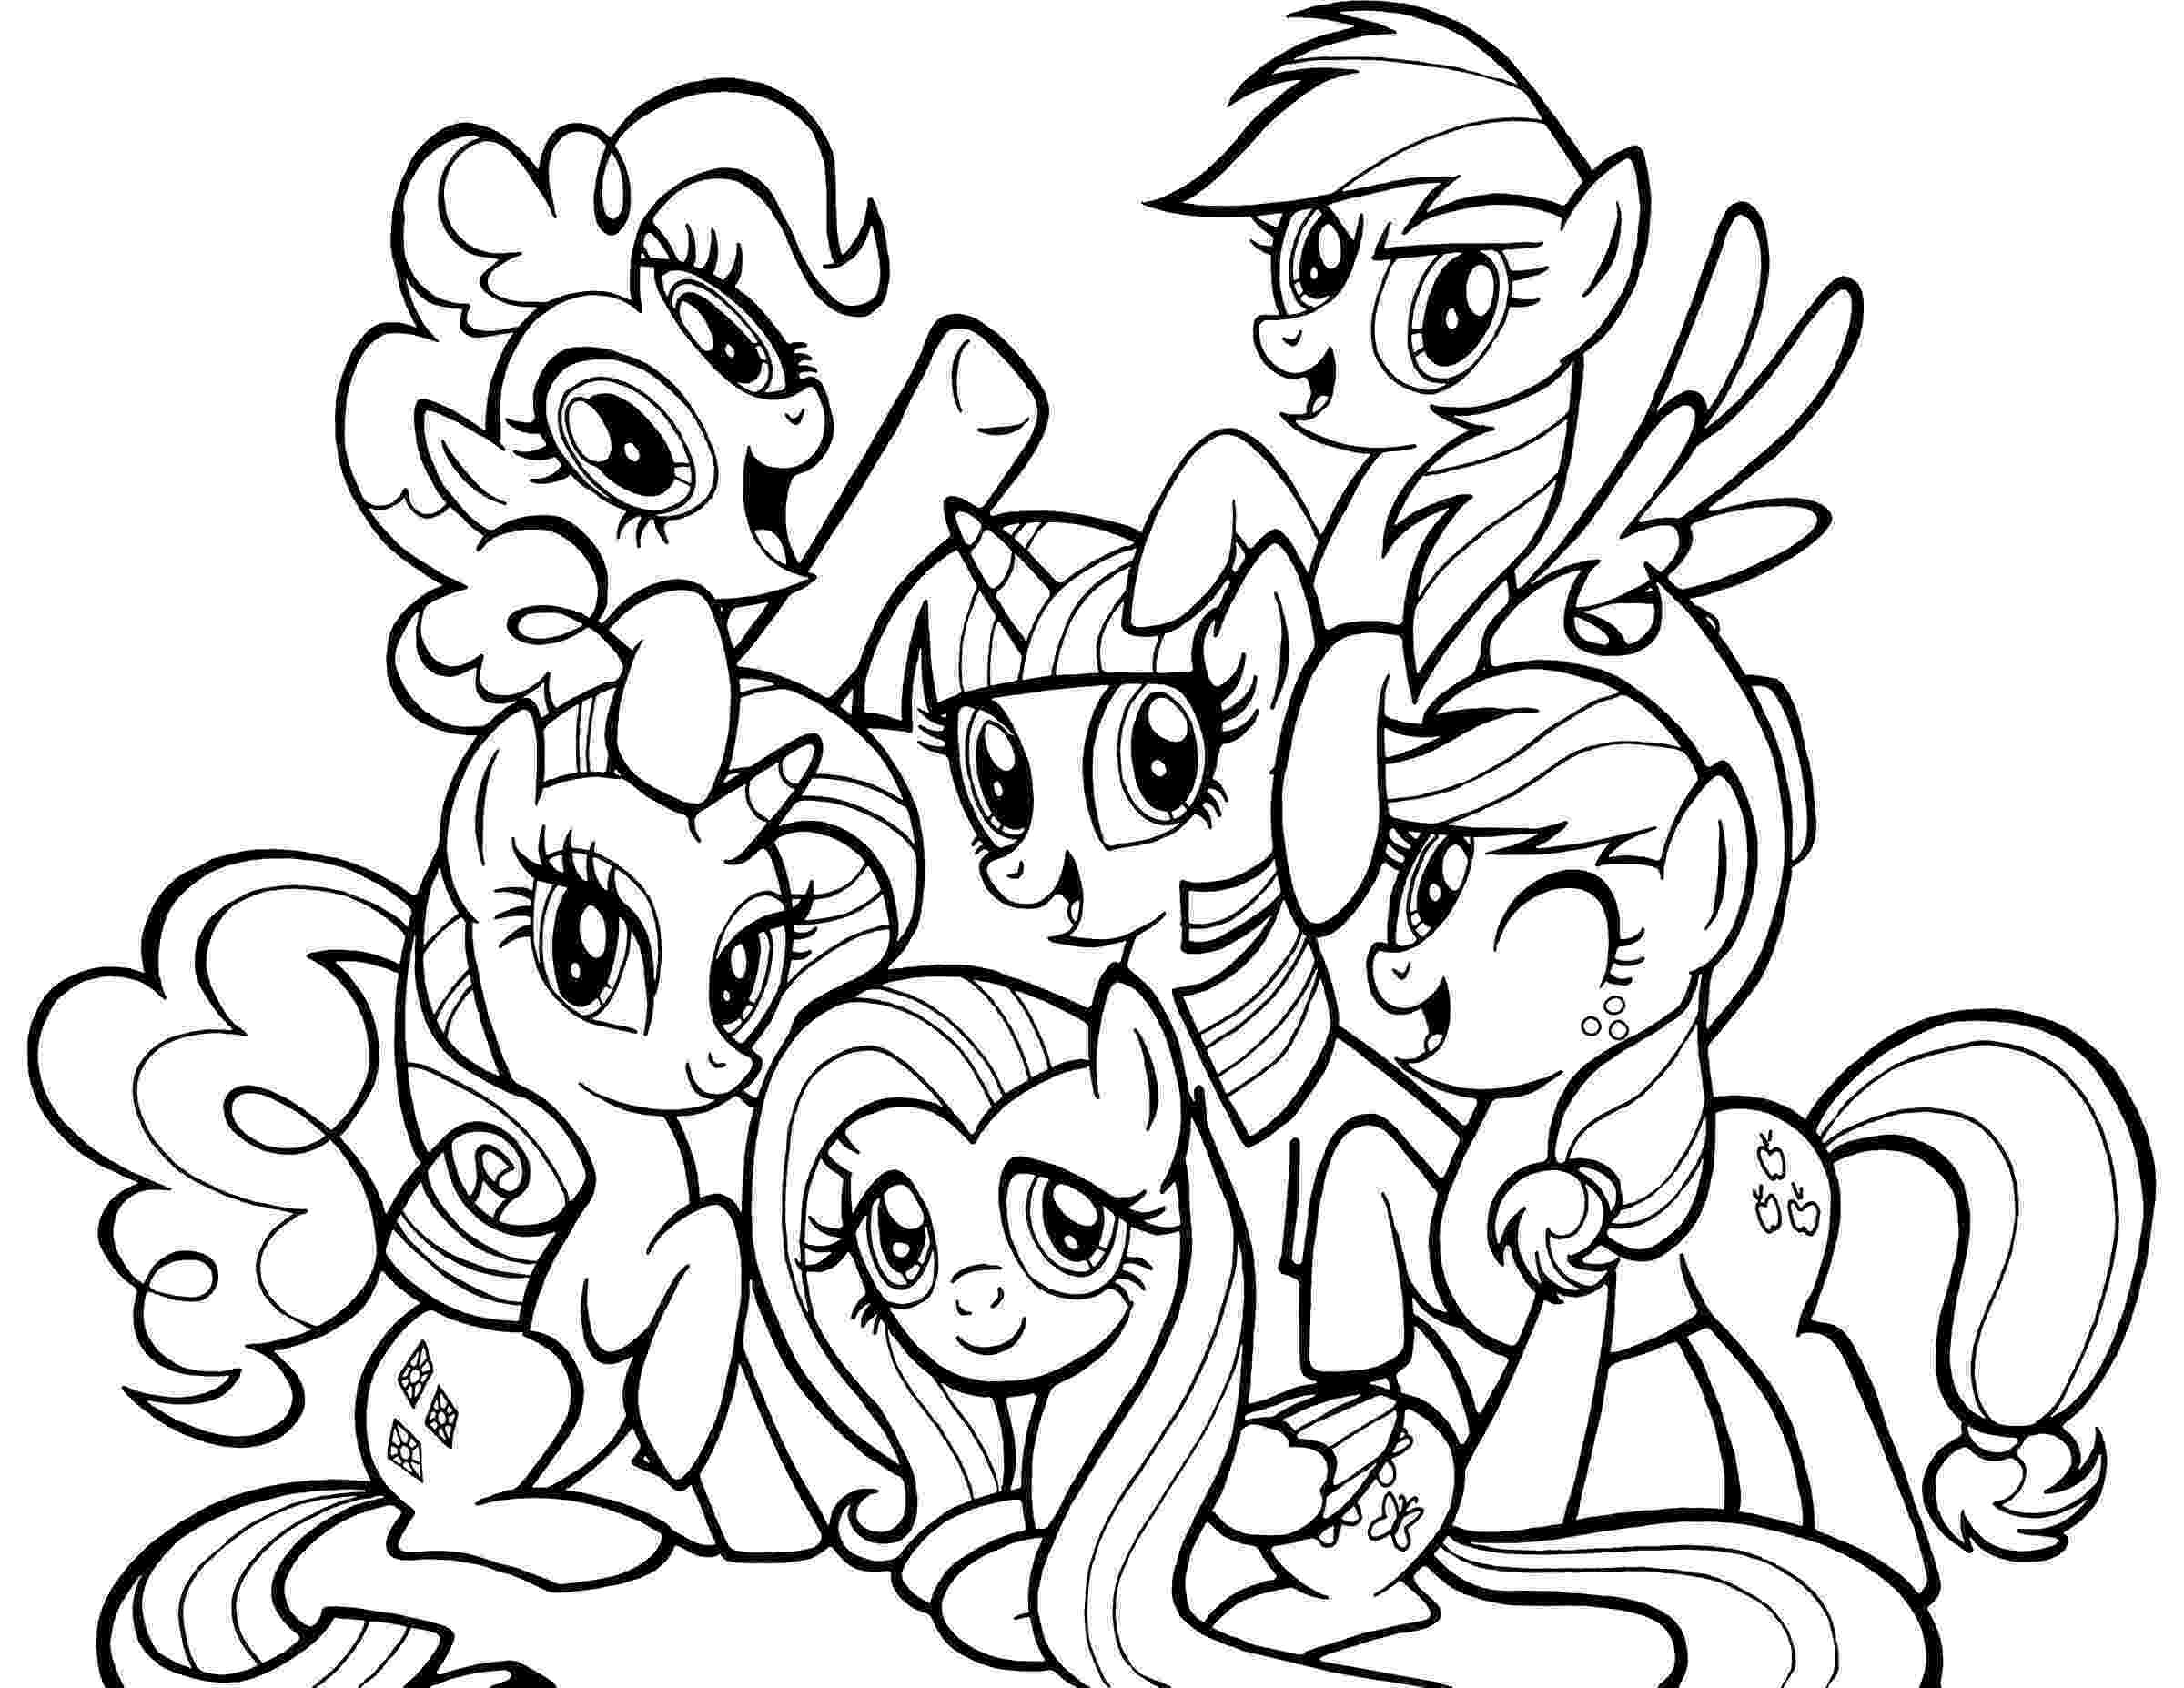 printable my little pony coloring pages ponies from ponyville coloring pages free printable pony my coloring printable pages little